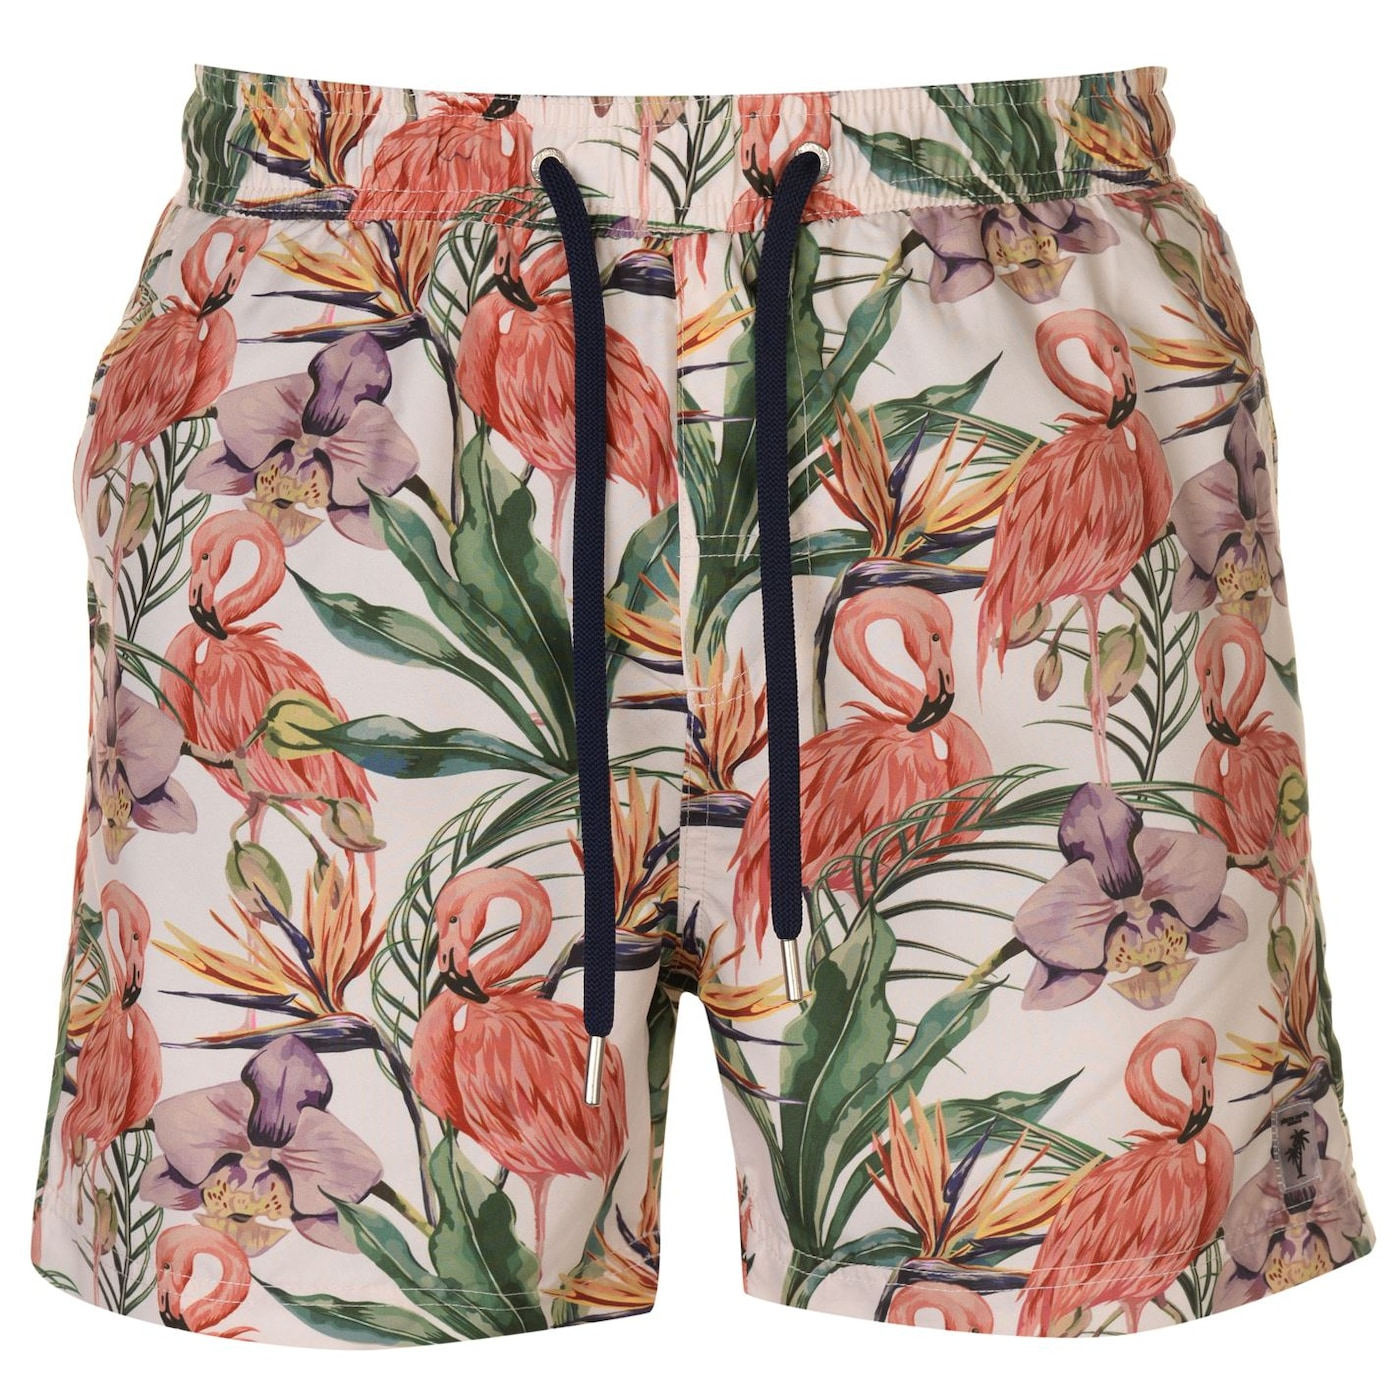 Pierre Cardin Tropical Swimshorts Mens